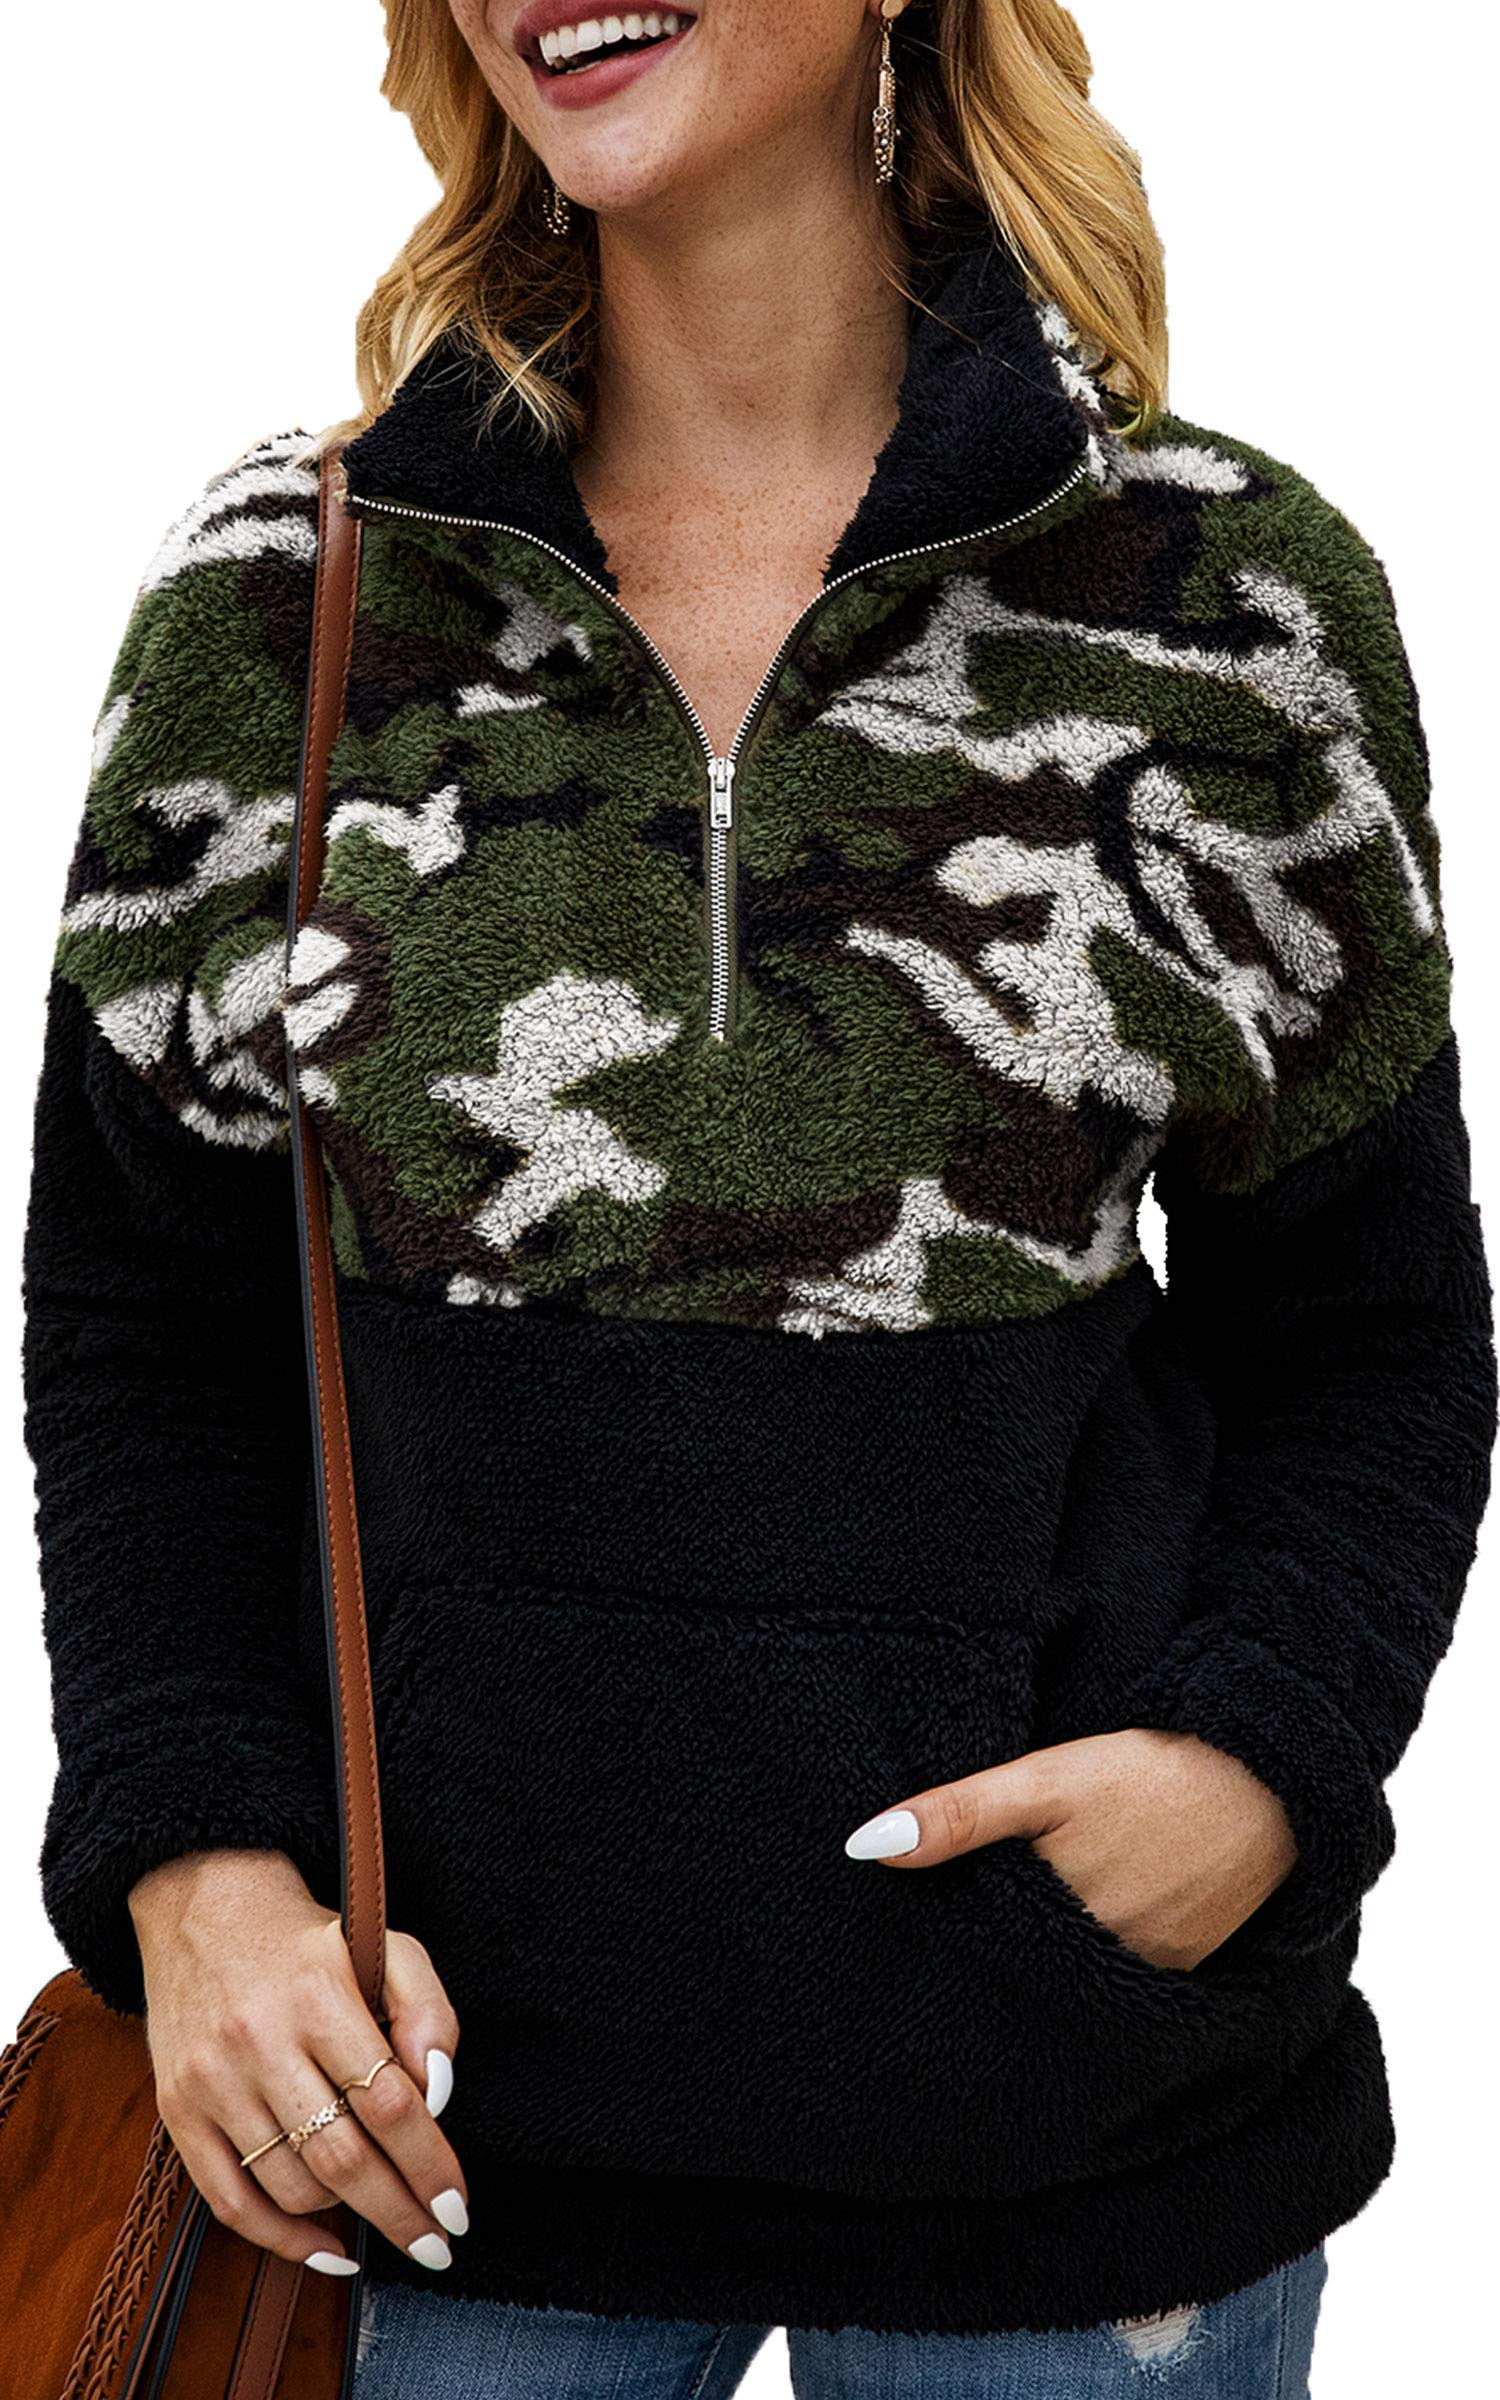 Angashion Womens Long Sleeve Half Zip Up Warm Fuzzy Camouflage Print Patchwork Fleece Pullover Tops with Pocket for Winter 359Black White M by Angashion